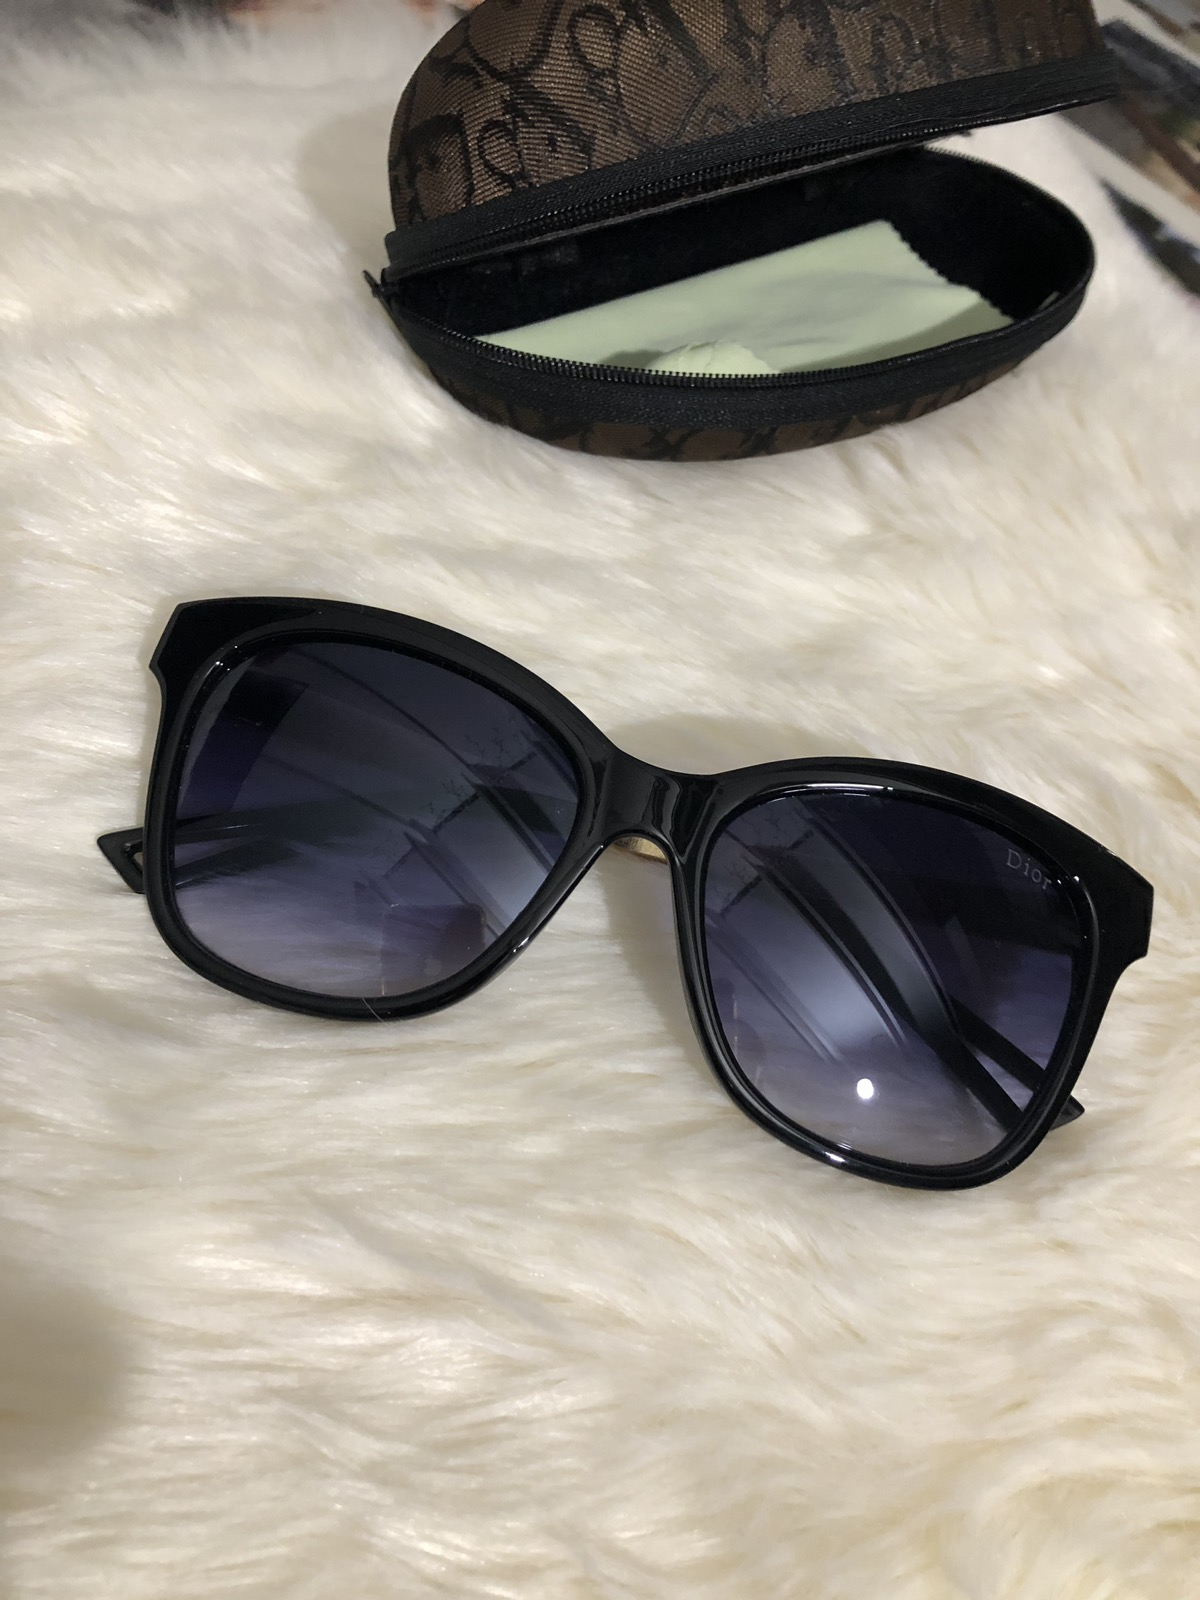 7a31d3f73e16 Christian Dior Sunglasses 1